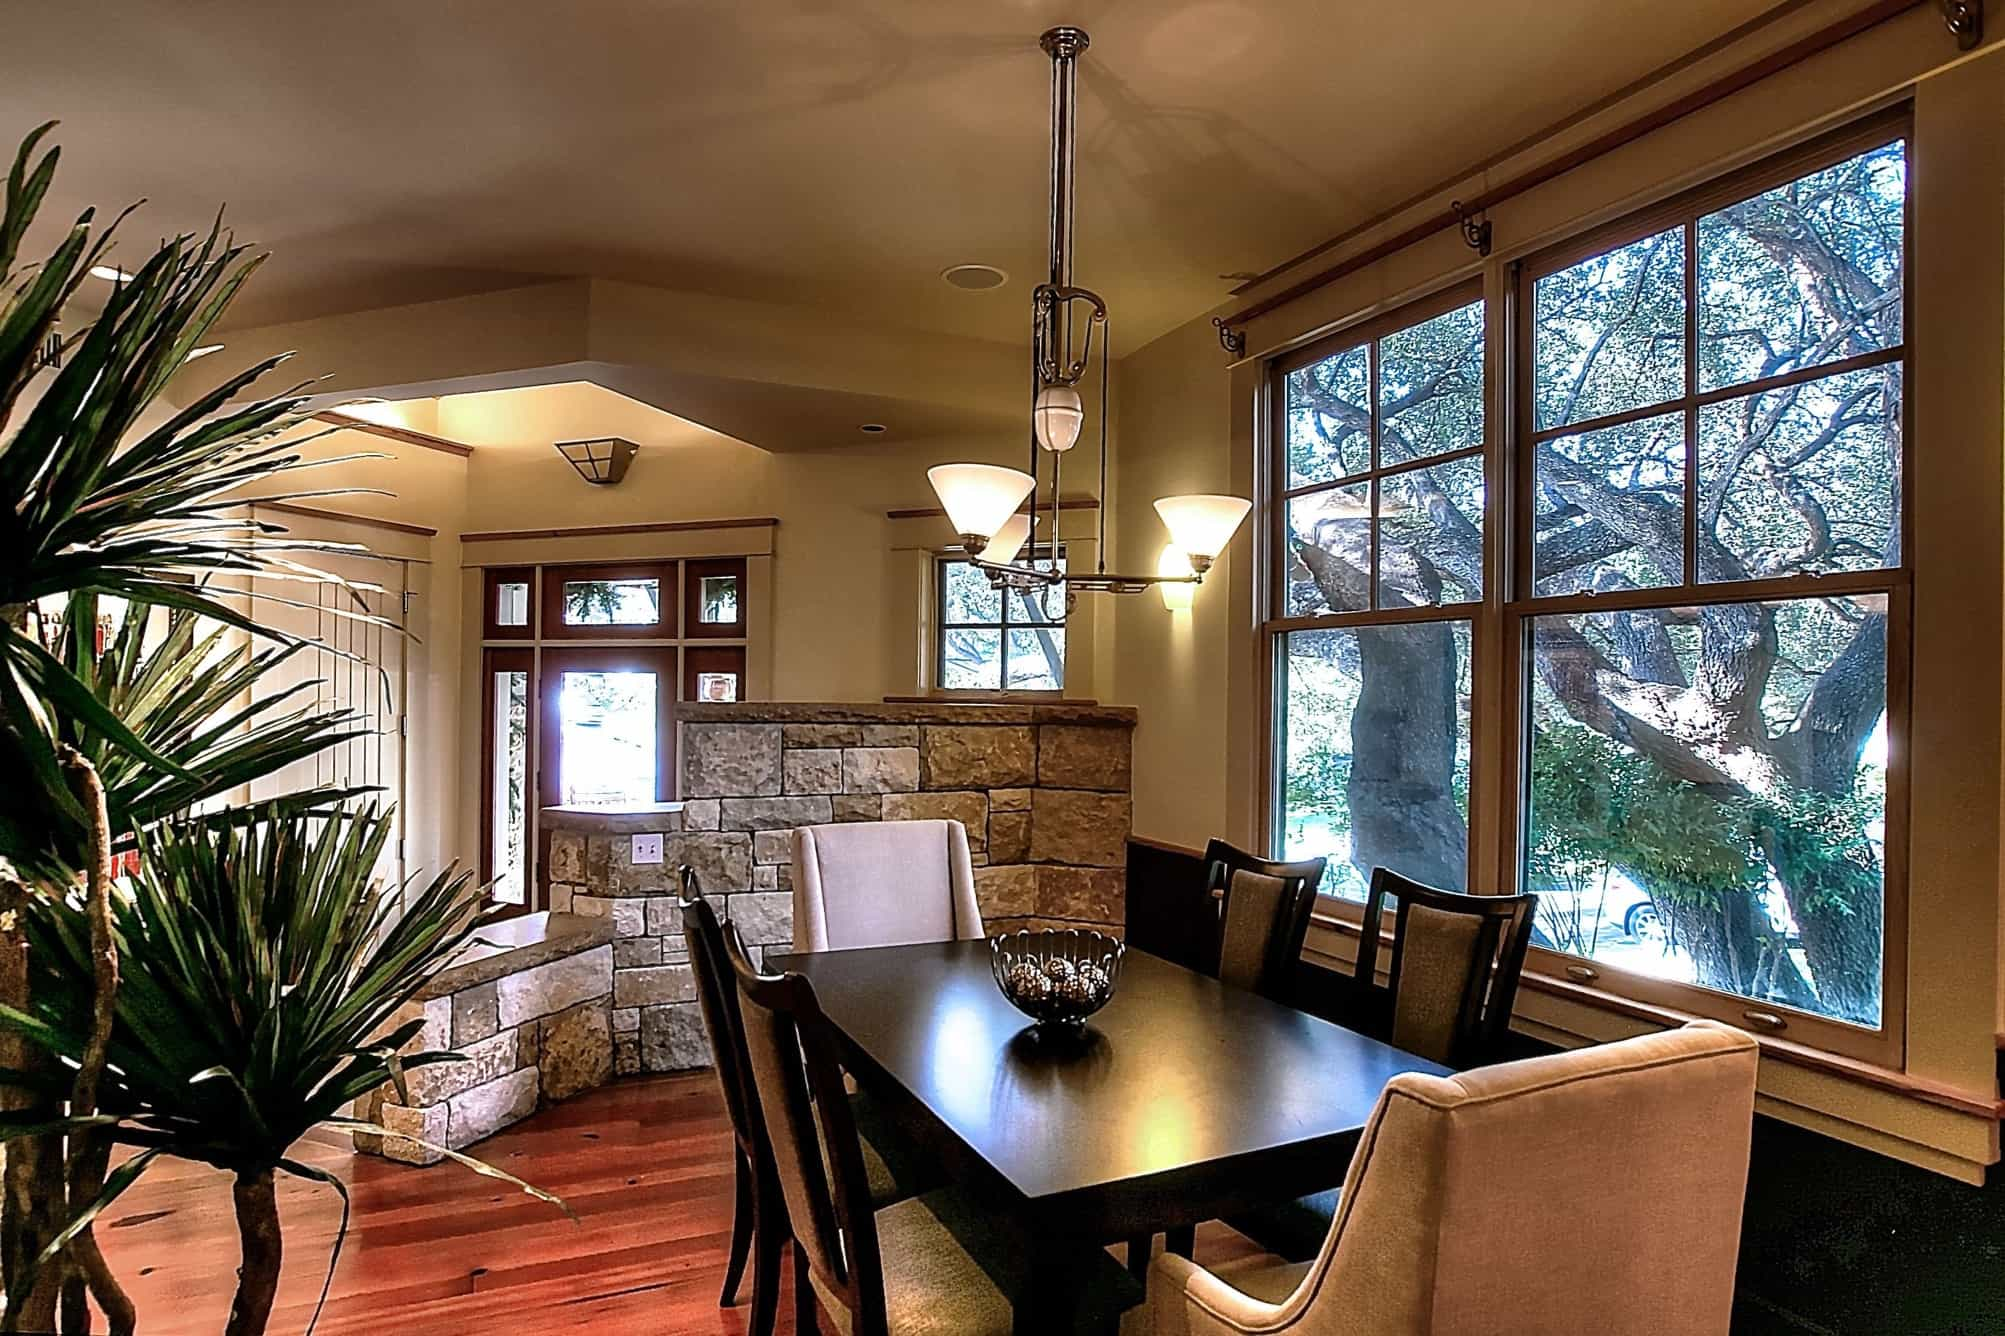 Featured Image of Casual Craftsman Dining Room Remodel With Formal Nuance